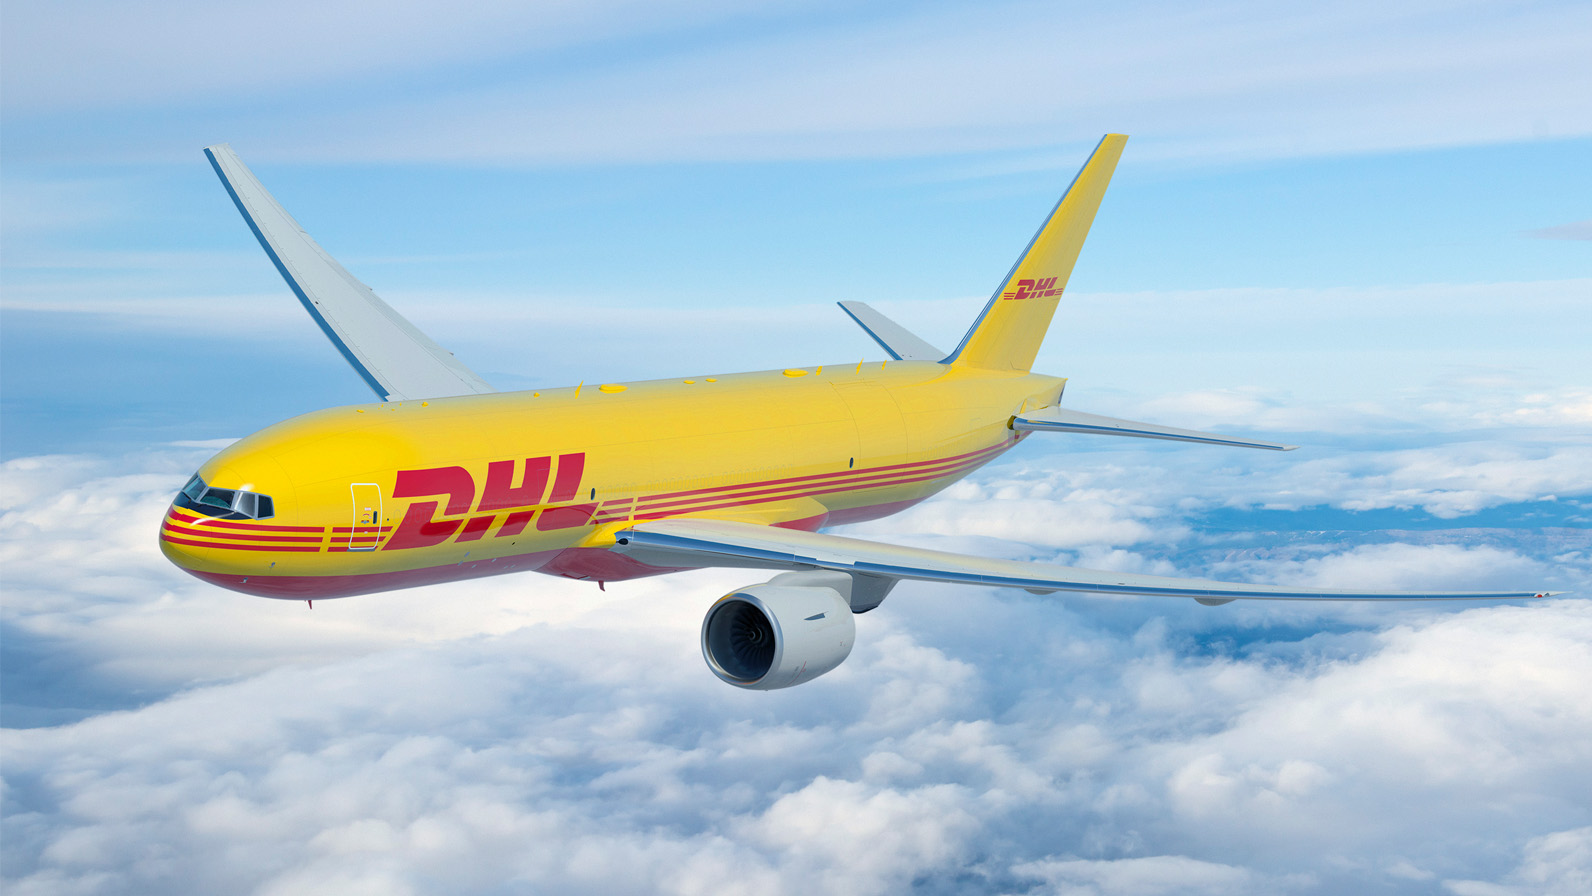 DHL Boeing 777 Freighter